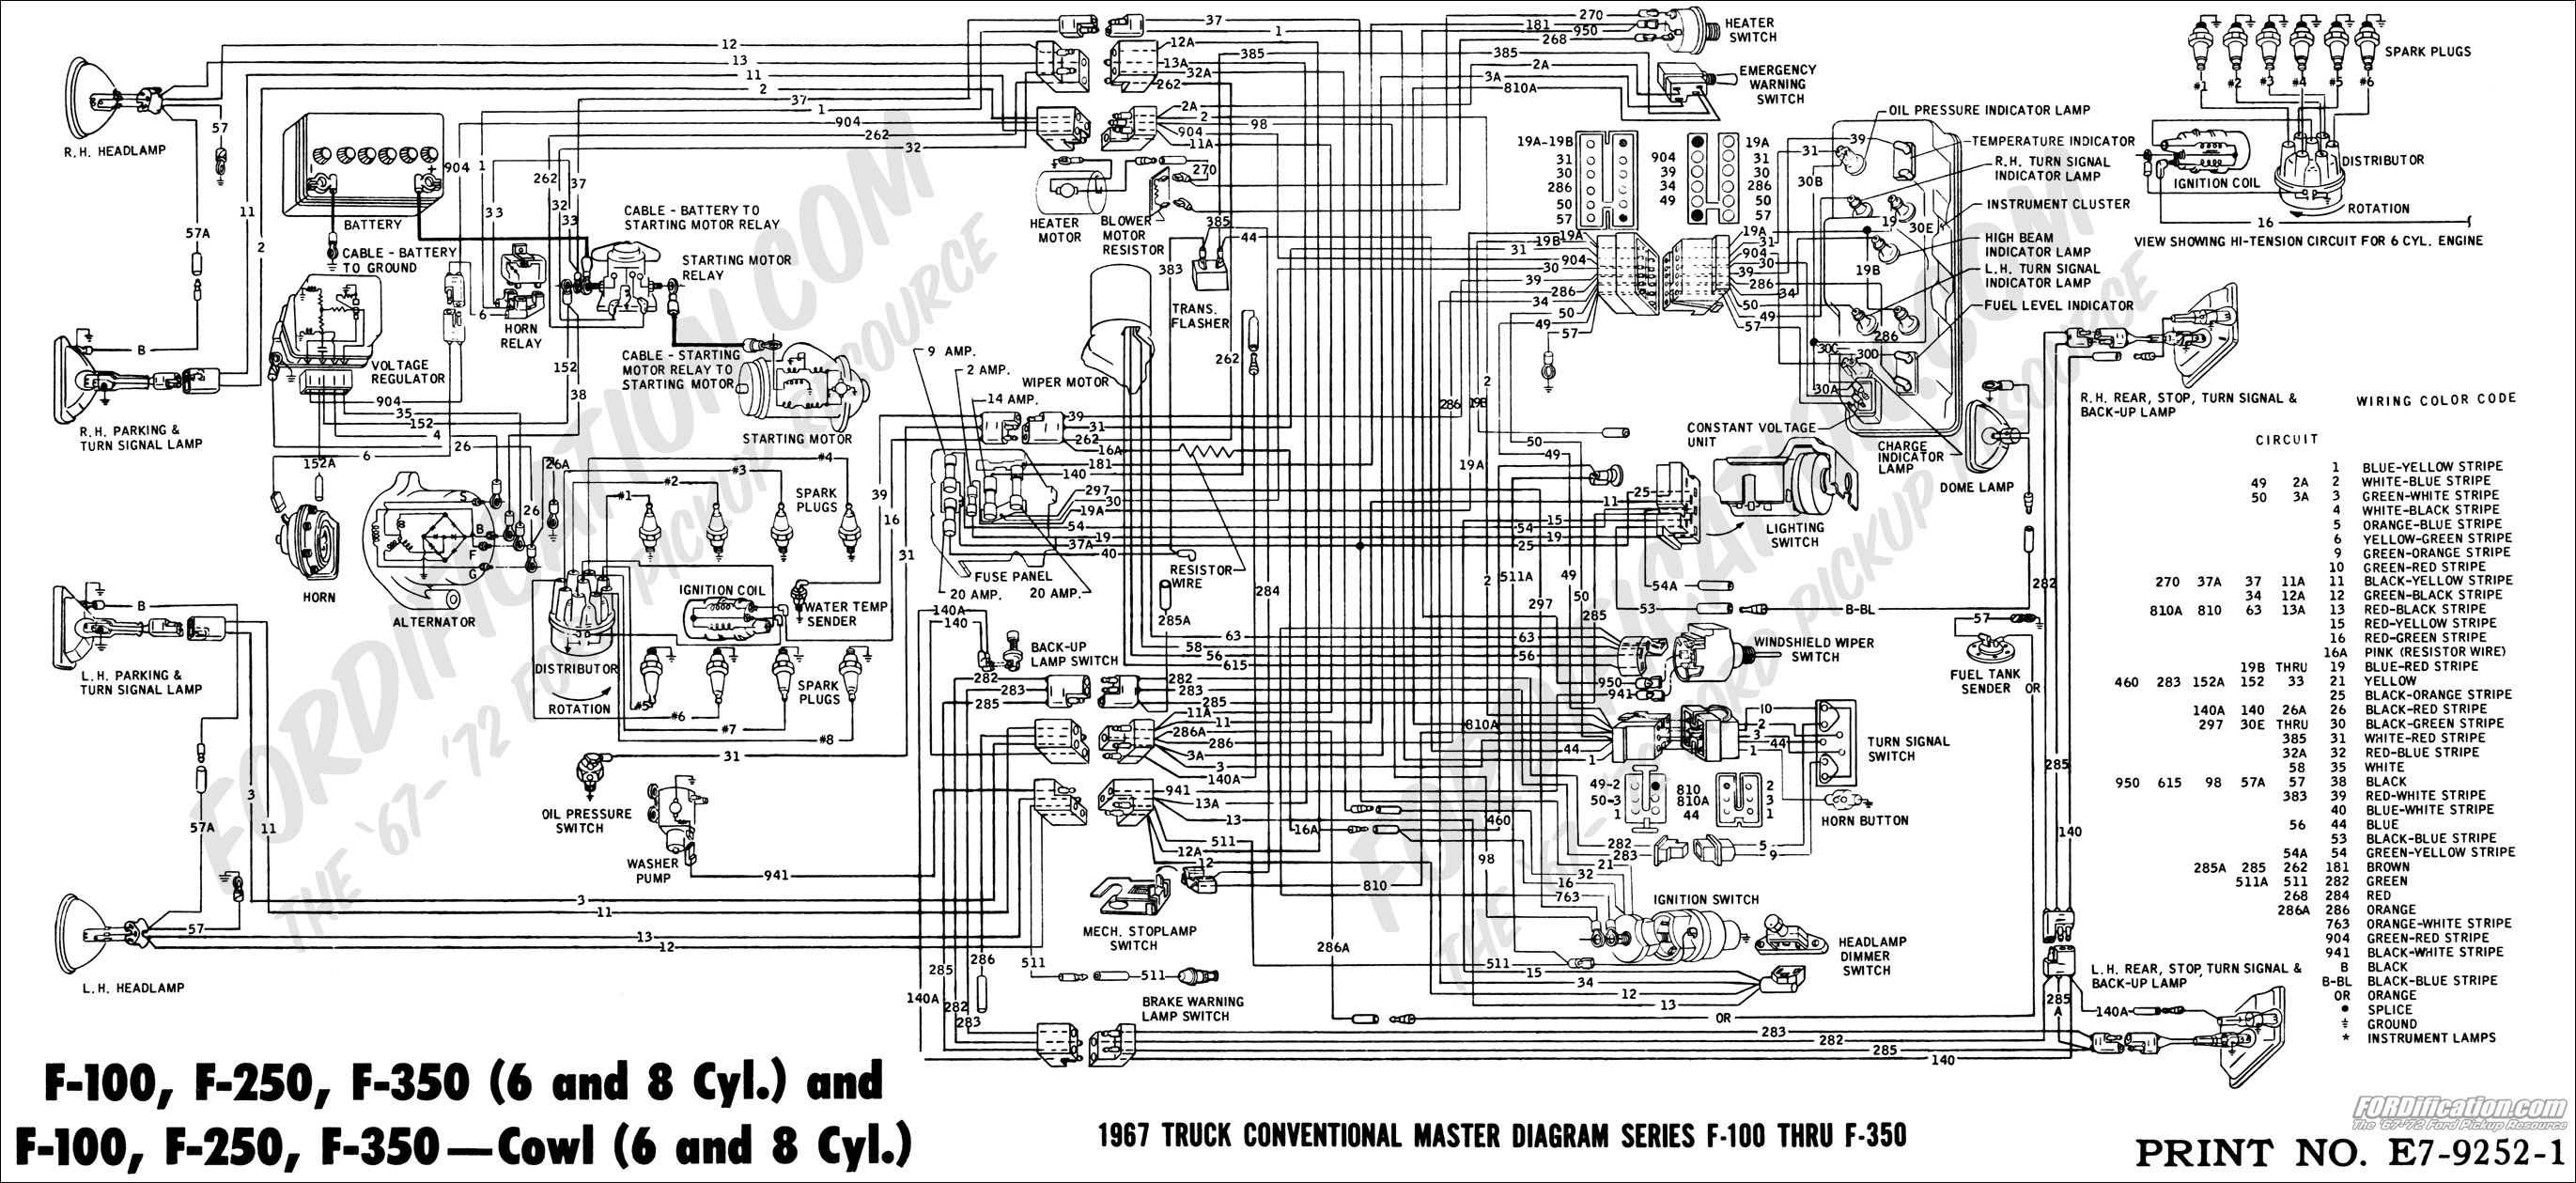 1968 Ford F100 Wiring Diagram Pdf - Schematics Wiring Diagram  Ford Wiring Diagram on 1954 dodge wiring diagram, 1964 mustang wiring diagram, 1949 cadillac wiring diagram, 1926 ford wiring diagram, 1940 buick wiring diagram, 1967 ford wiring diagram, 1937 ford wiring diagram, 1957 pontiac wiring diagram, 1958 ford continental kit, 1957 plymouth wiring diagram, 1957 dodge wiring diagram, 59 ford wiring diagram, 1930 ford wiring diagram, 1953 buick wiring diagram, 1950 ford wiring diagram, 1931 ford model a wiring diagram, 1955 dodge wiring diagram, 1955 buick wiring diagram, 1963 ford wiring diagram, 1950 cadillac wiring diagram,